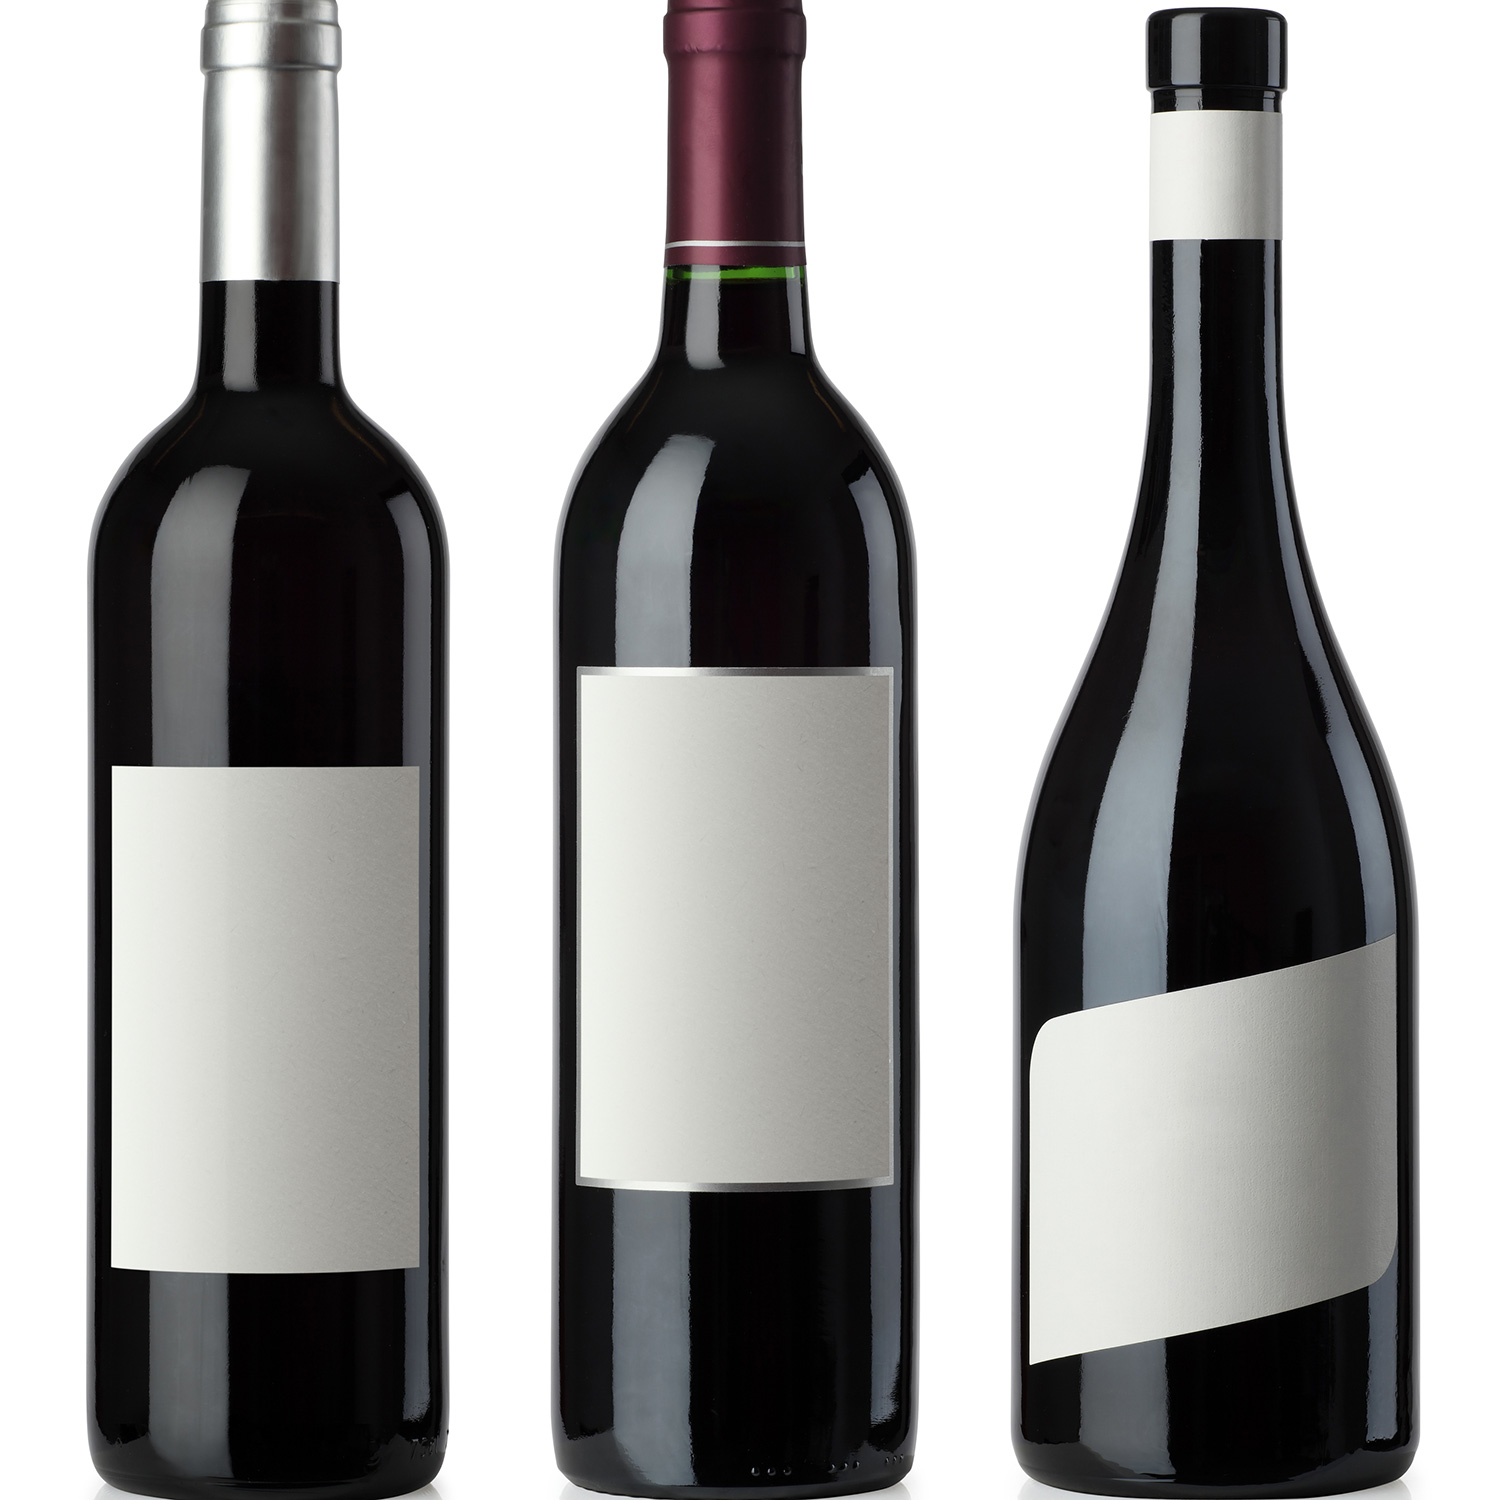 Free Bottle Of Wine, Download Free Clip Art, Free Clip Art on.